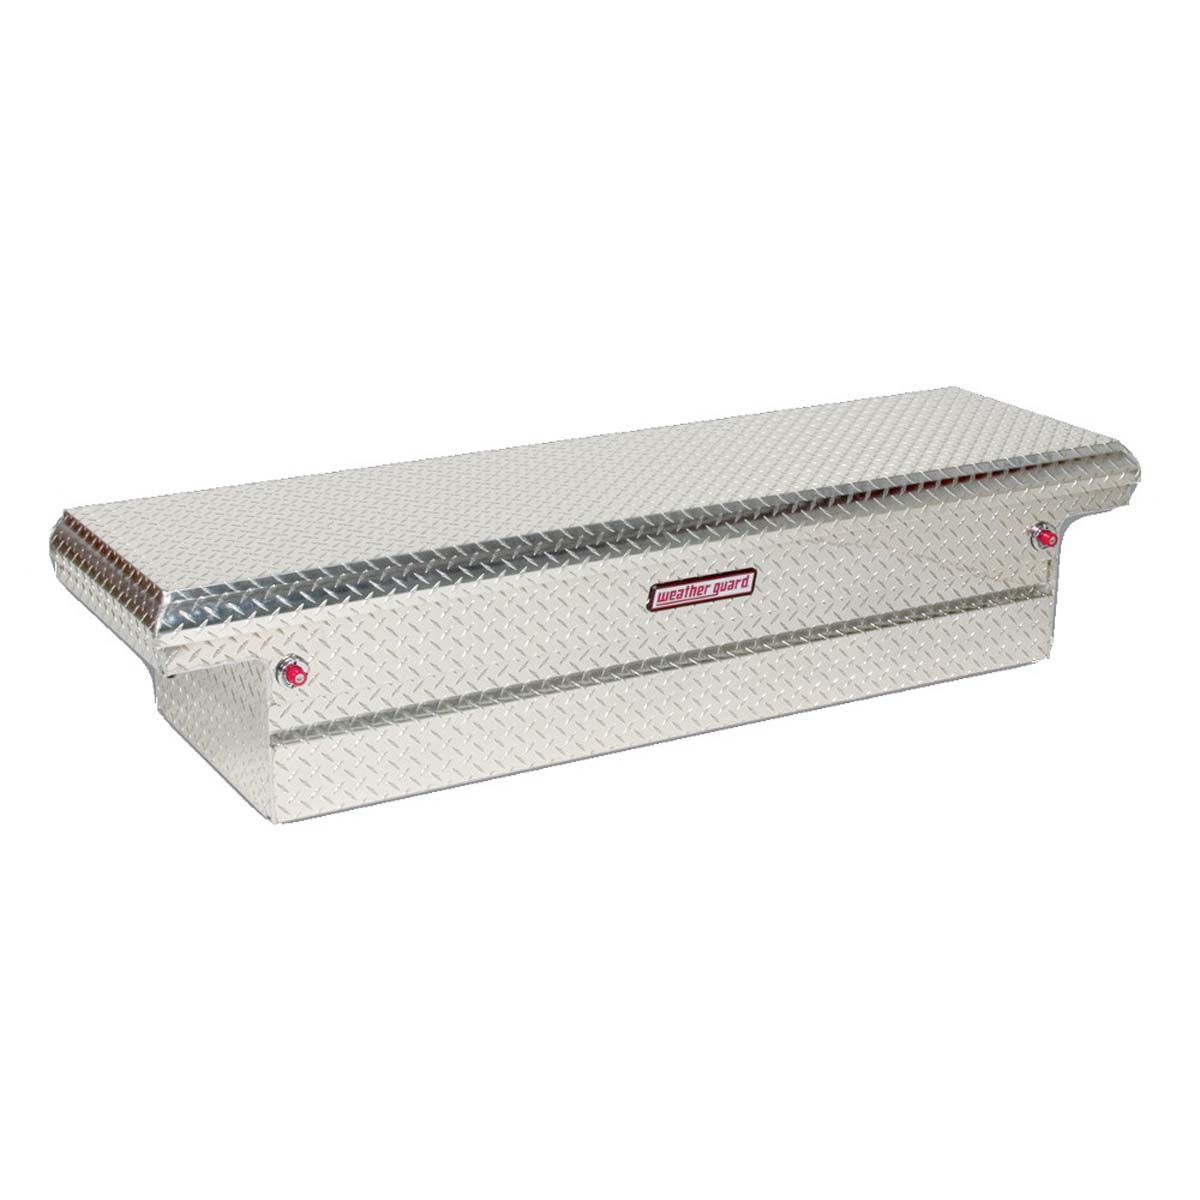 Saddle Box - Aluminum Low-Profile